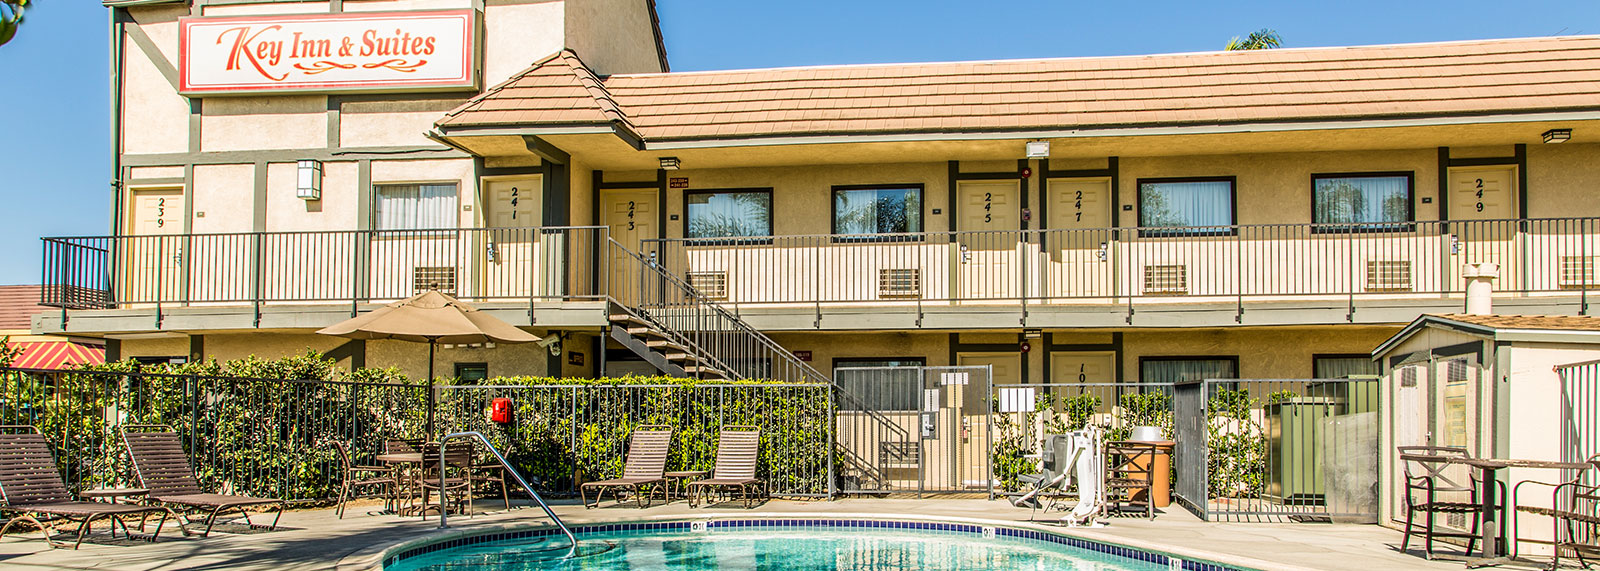 key-inn-and-suites-tustin-california-top